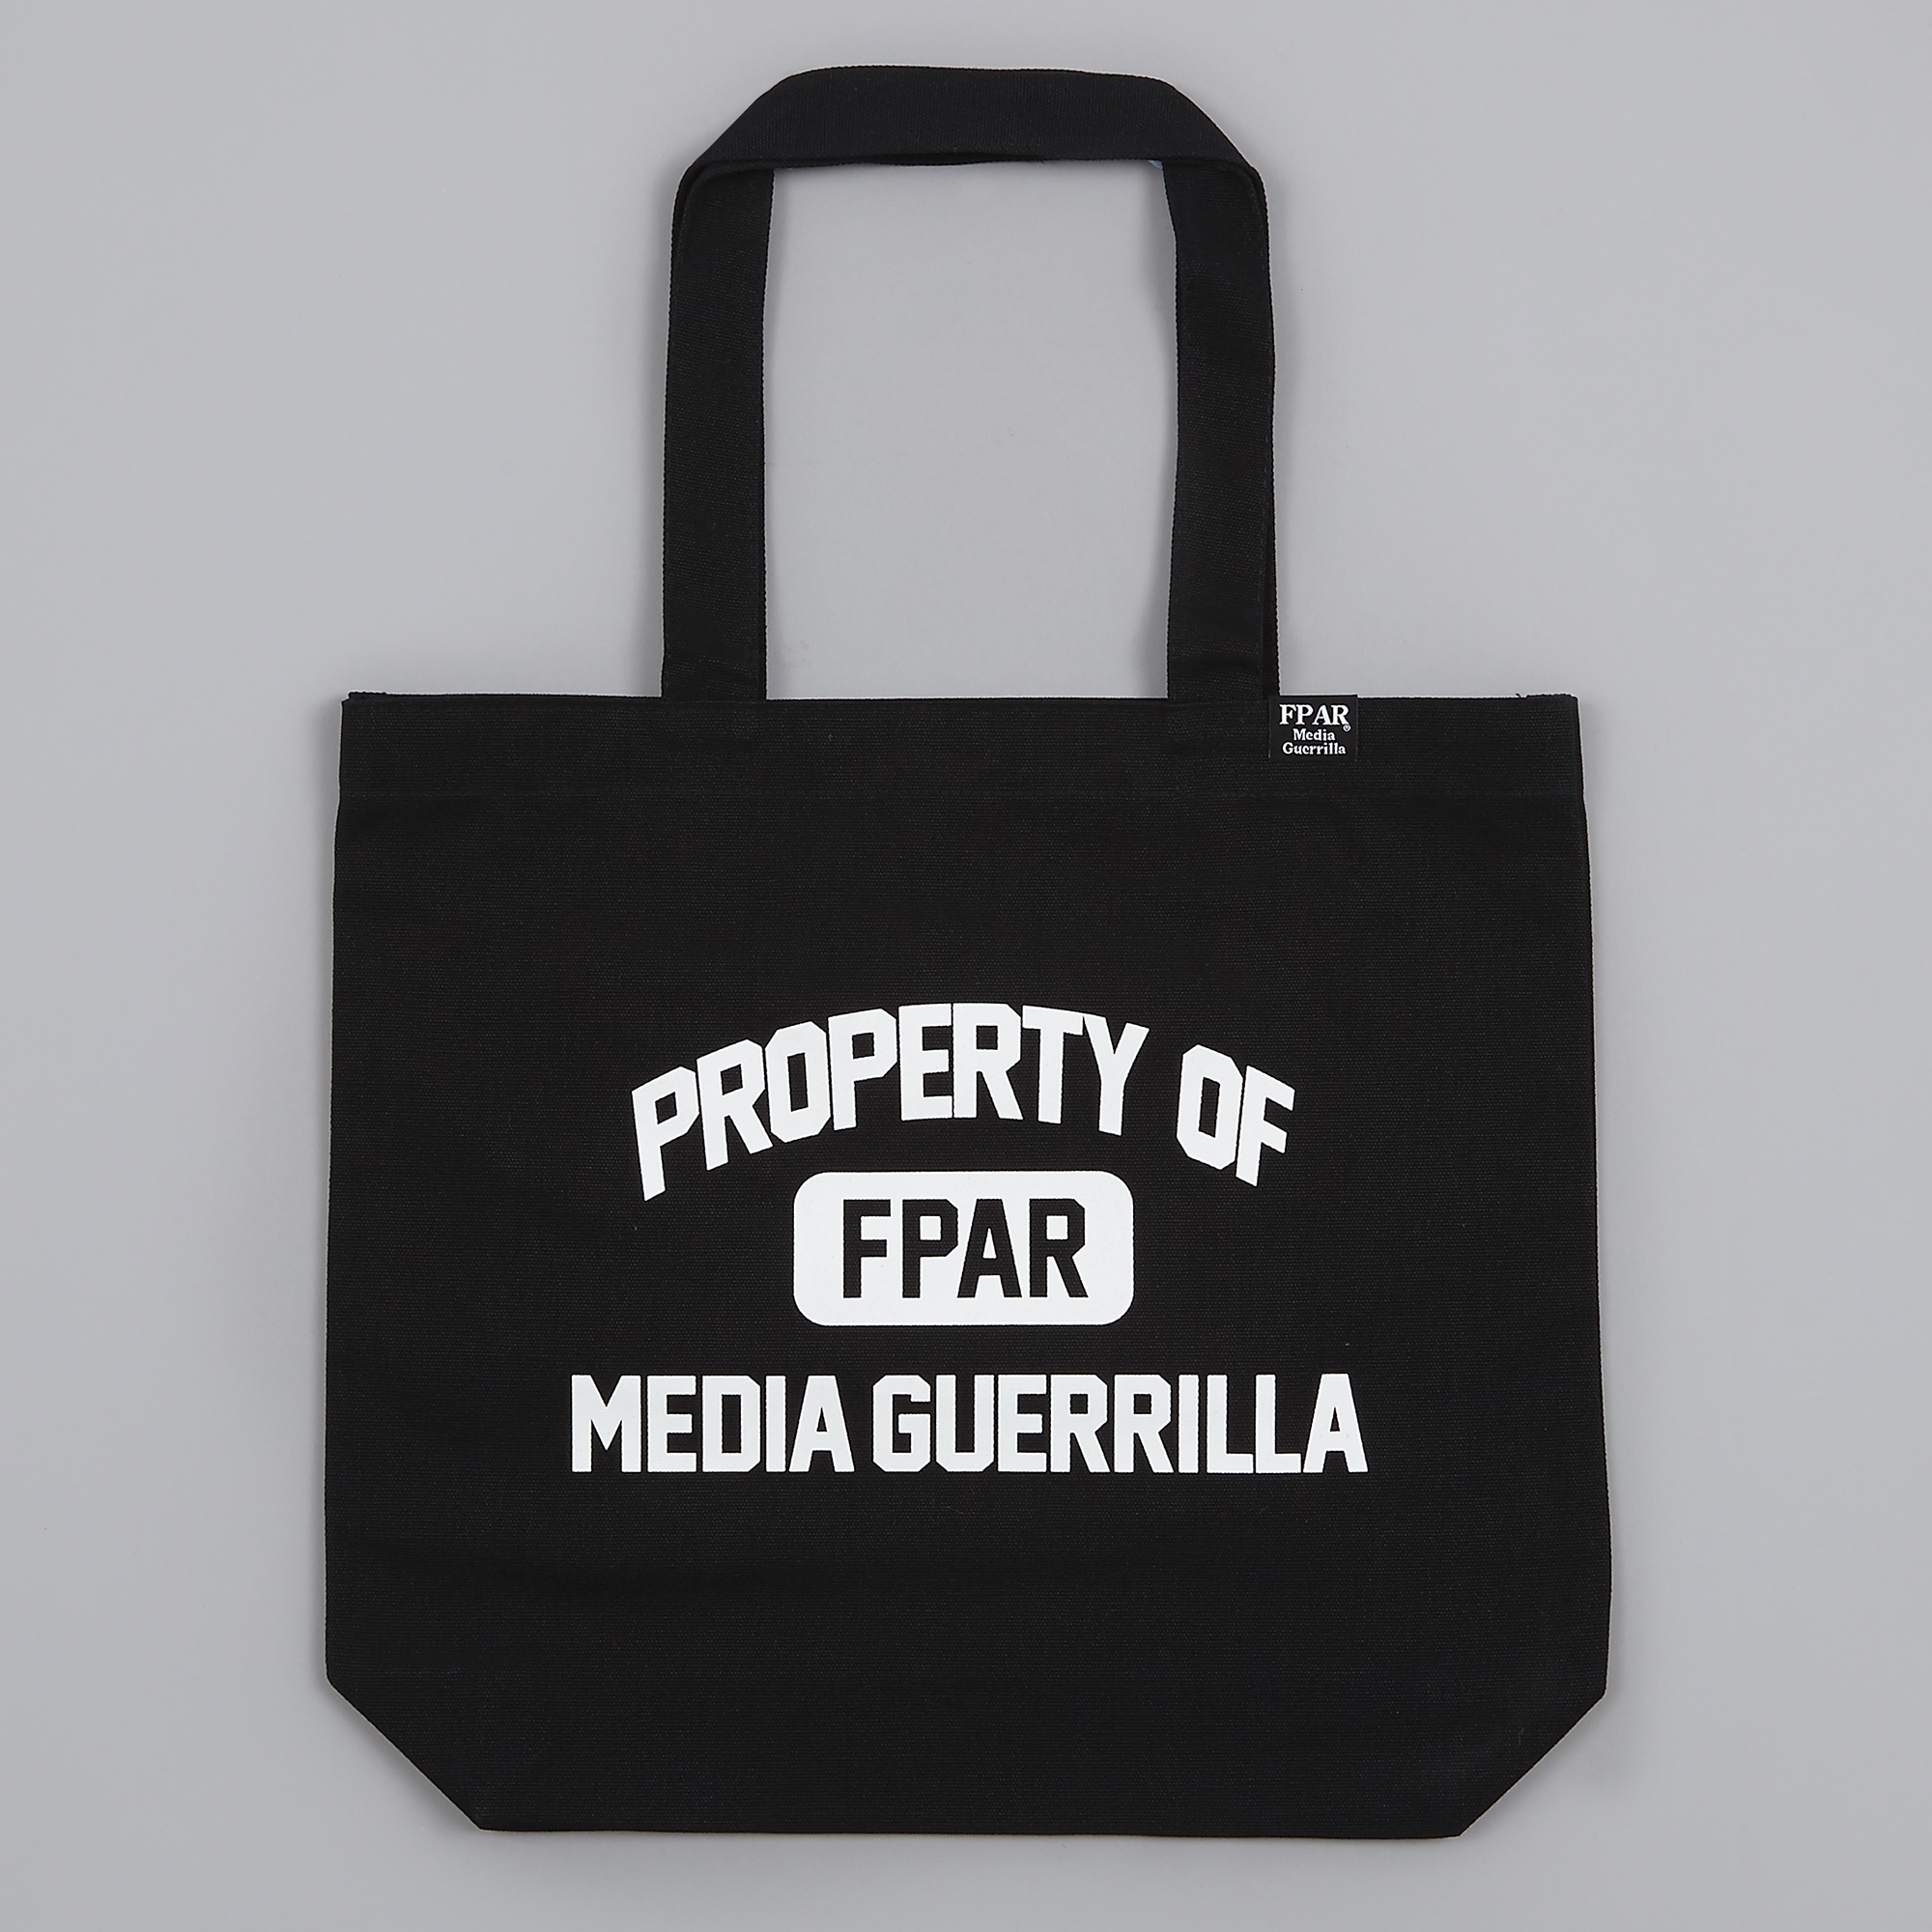 FPAR Property Tote Bag - Black 6590c42fa3d94